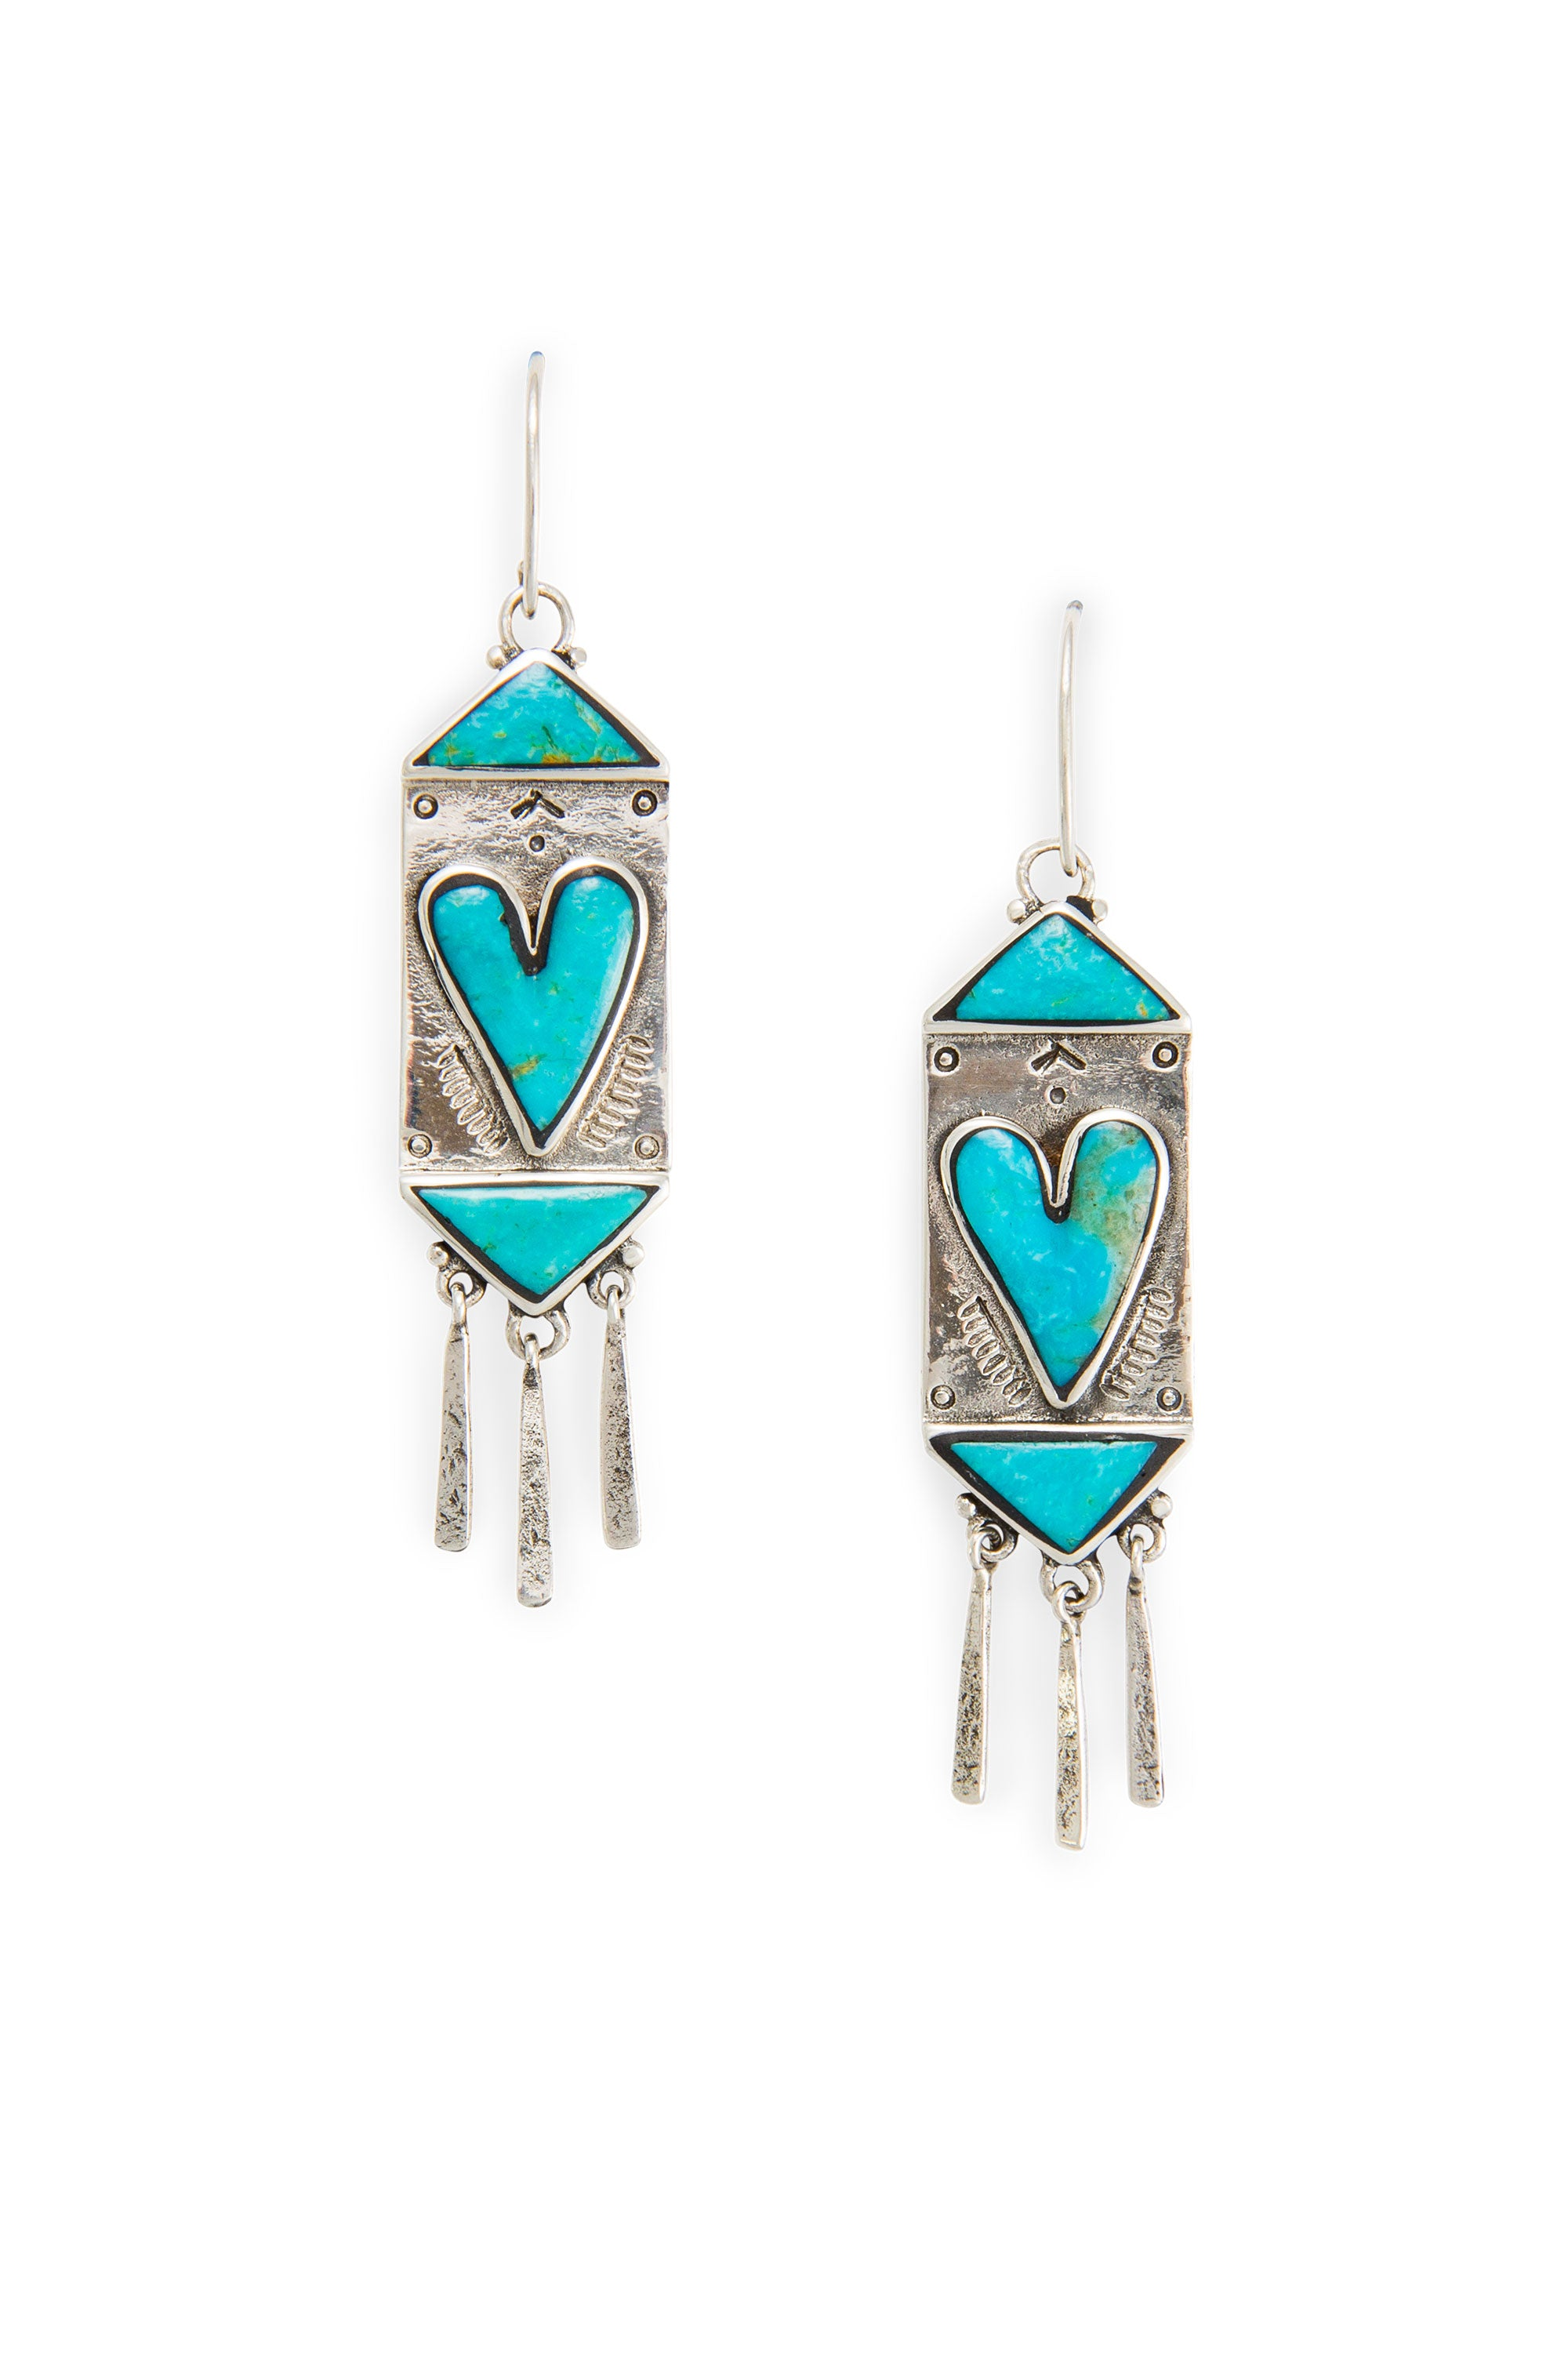 Earrings, Chandelier, Turquoise, Sweet Hearts